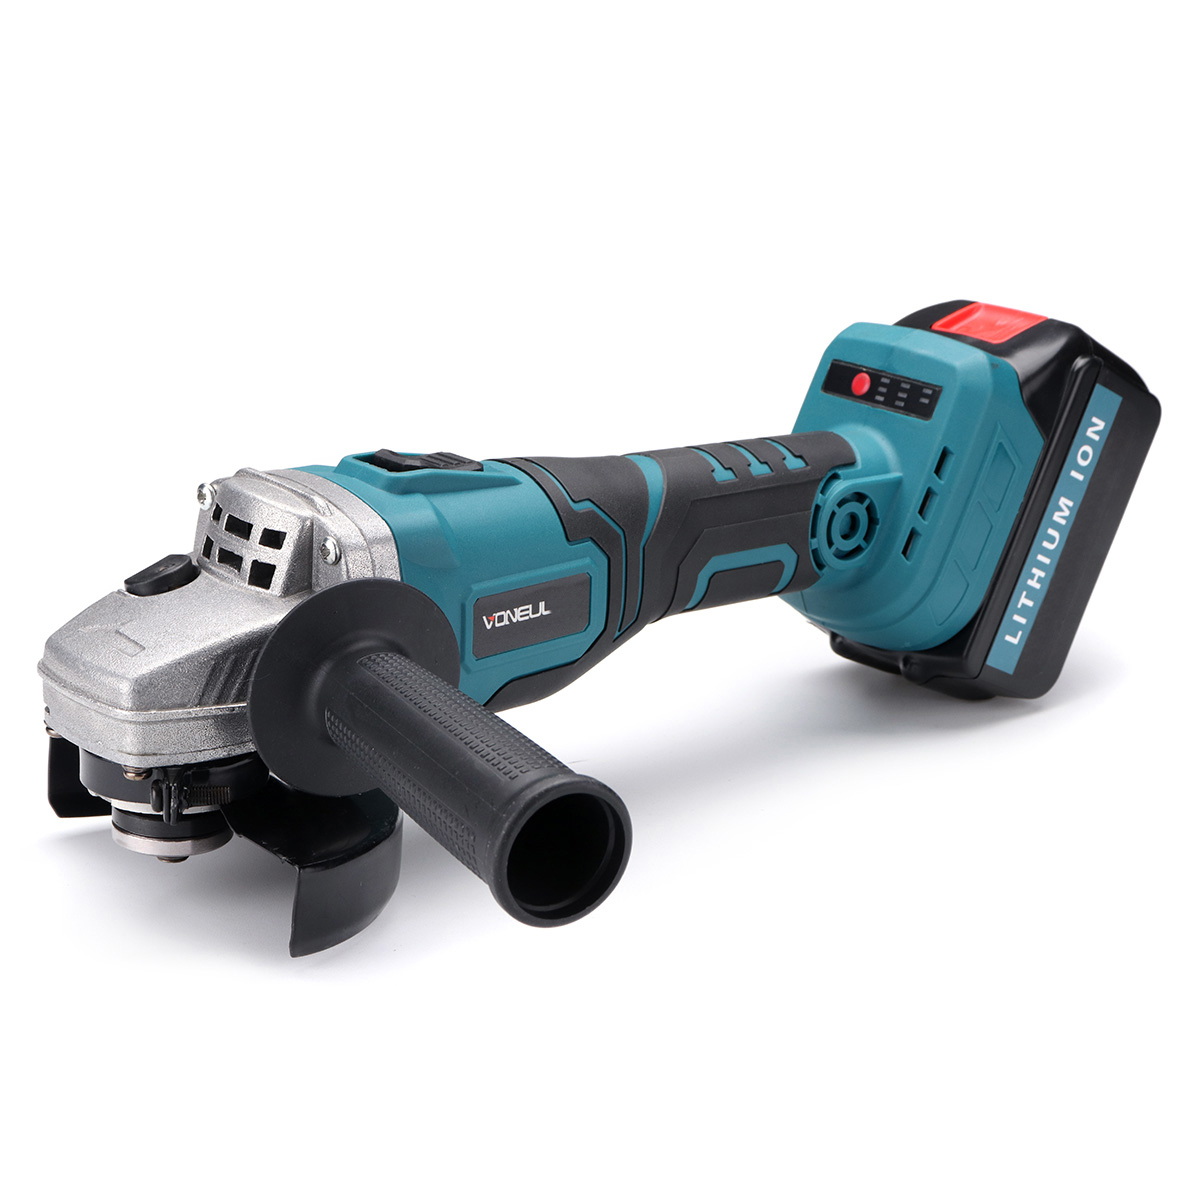 48V Cordless Electric Angle Grinder Lithium-Ion Grinding Machine Cutting 128tv/29800mA Angle Grinder Grinding / Chainsaw Bracket